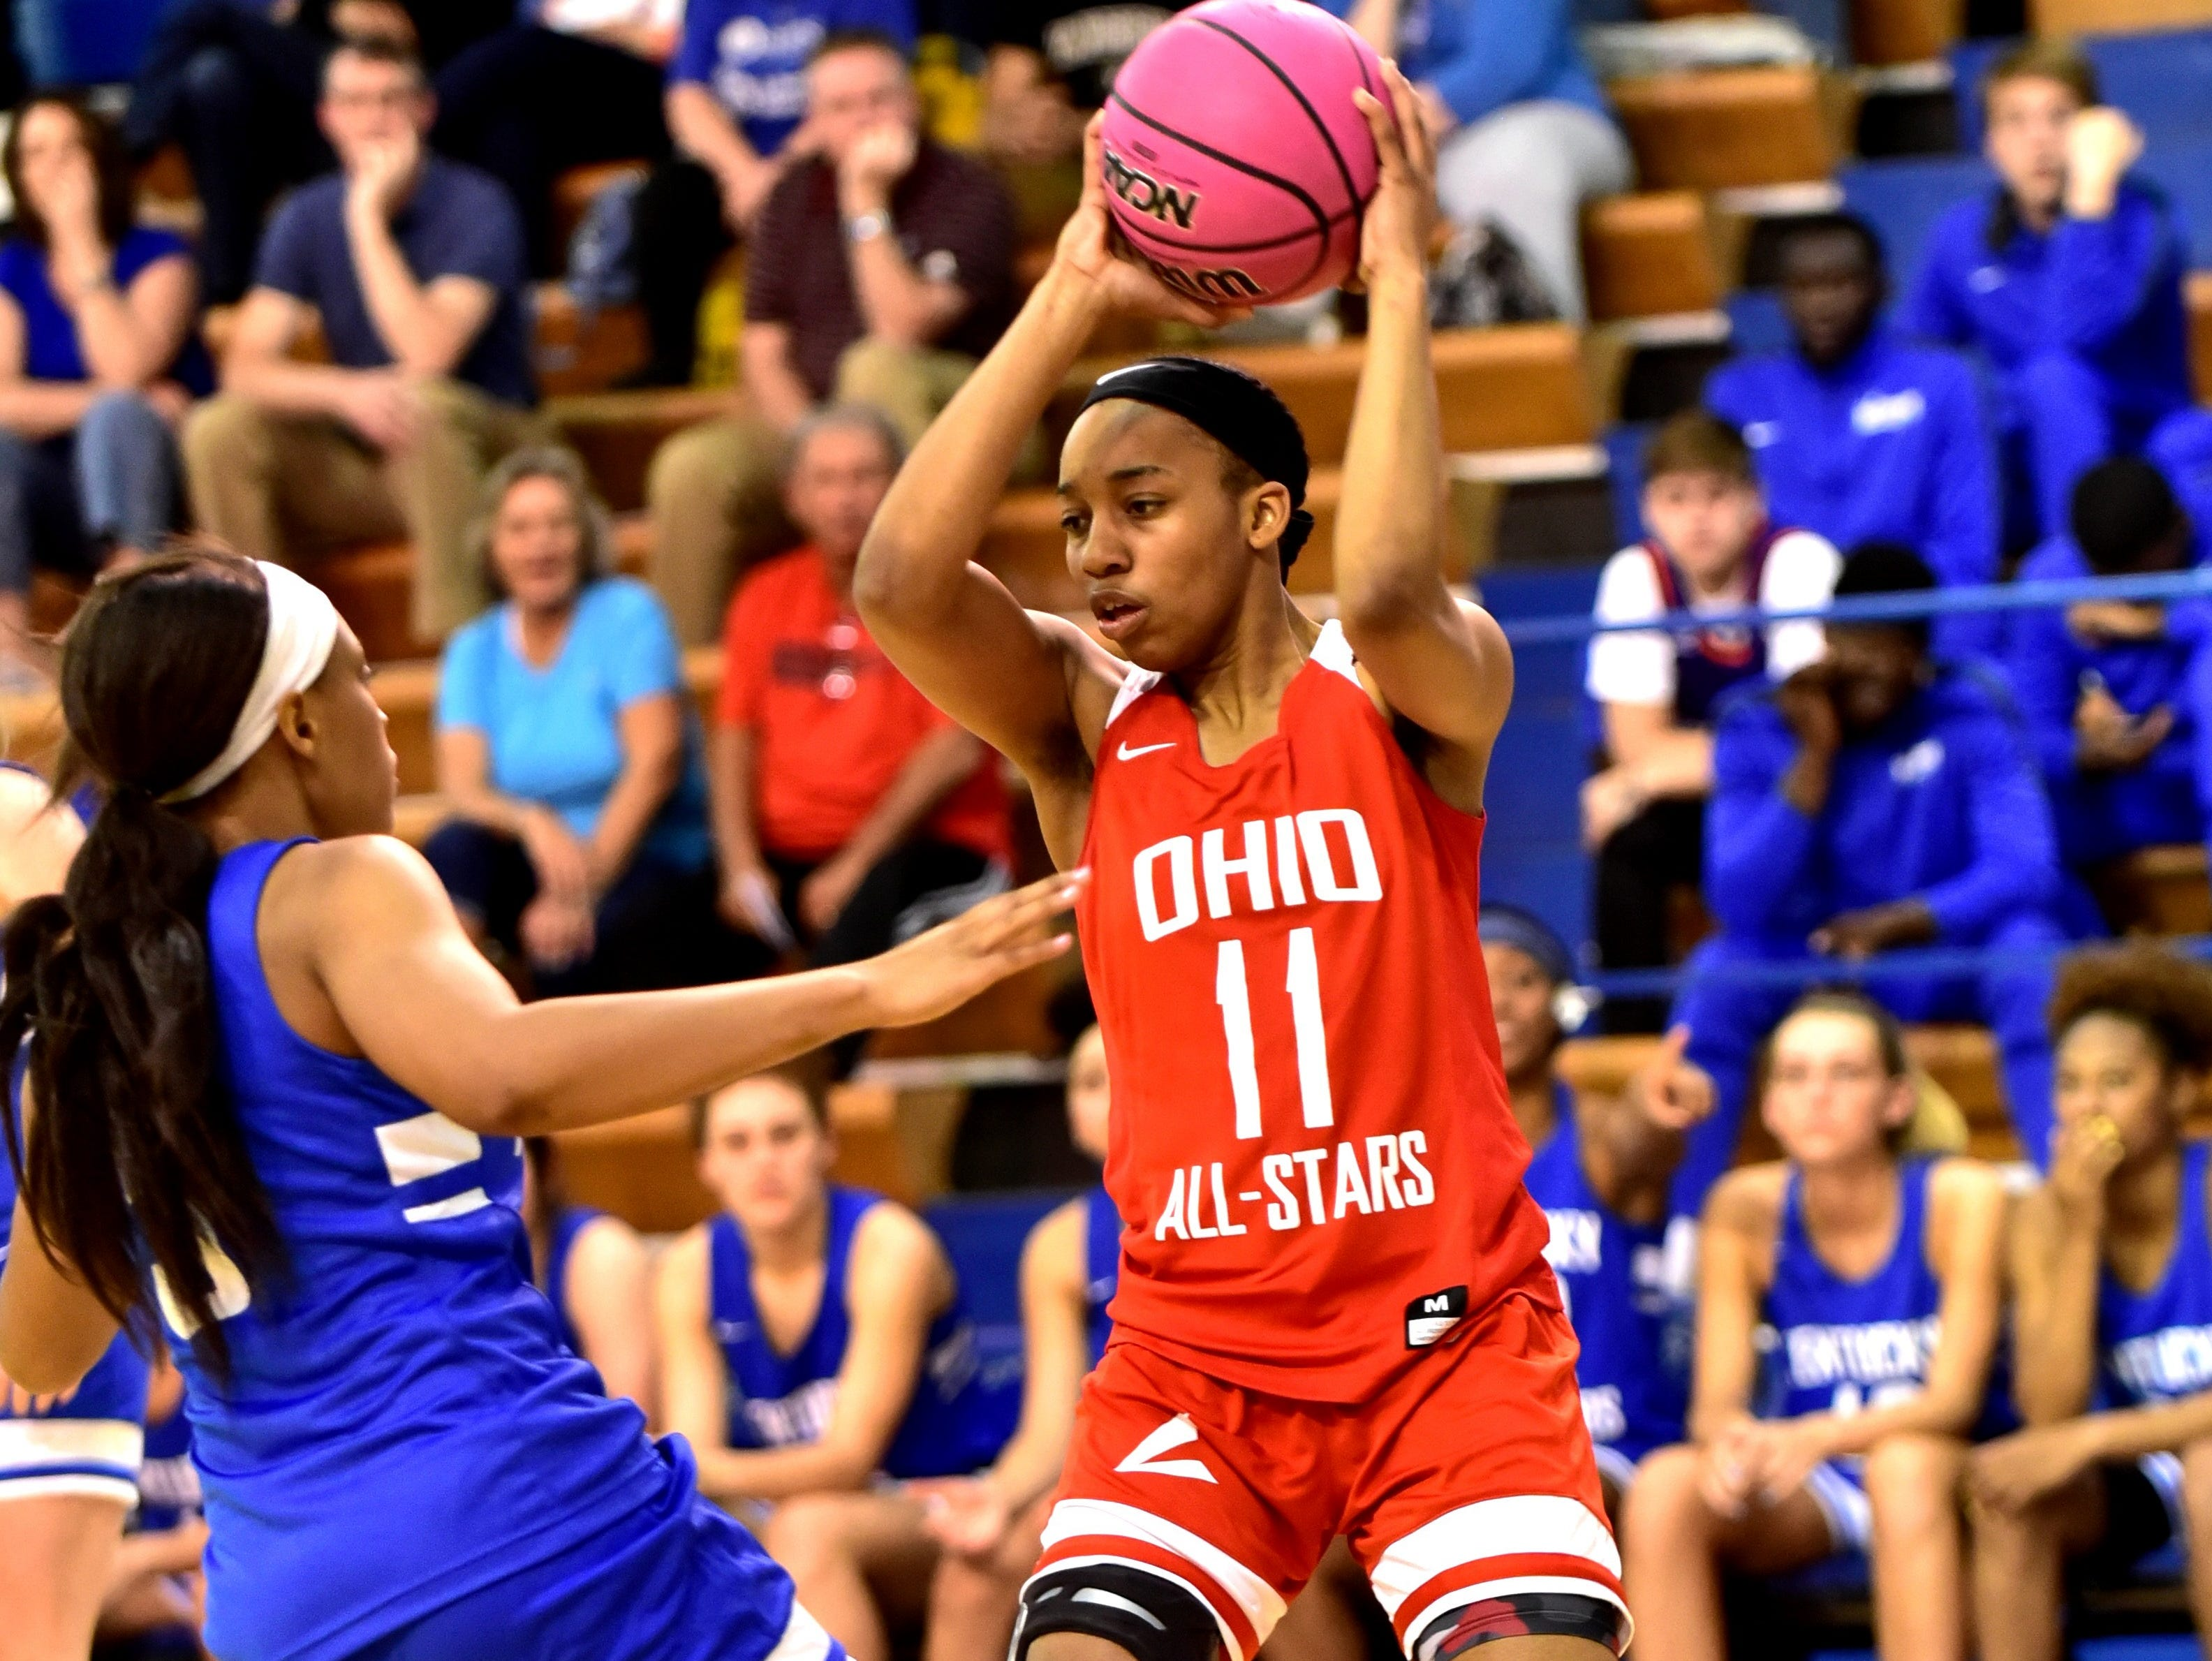 Dominique Camp (11) of Lakota West looks to pass out of a defensive jam for the Ohio girls team at the 28th Annual Ohio-Kentucky All Star Games played at Thomas More University, April 13, 2019